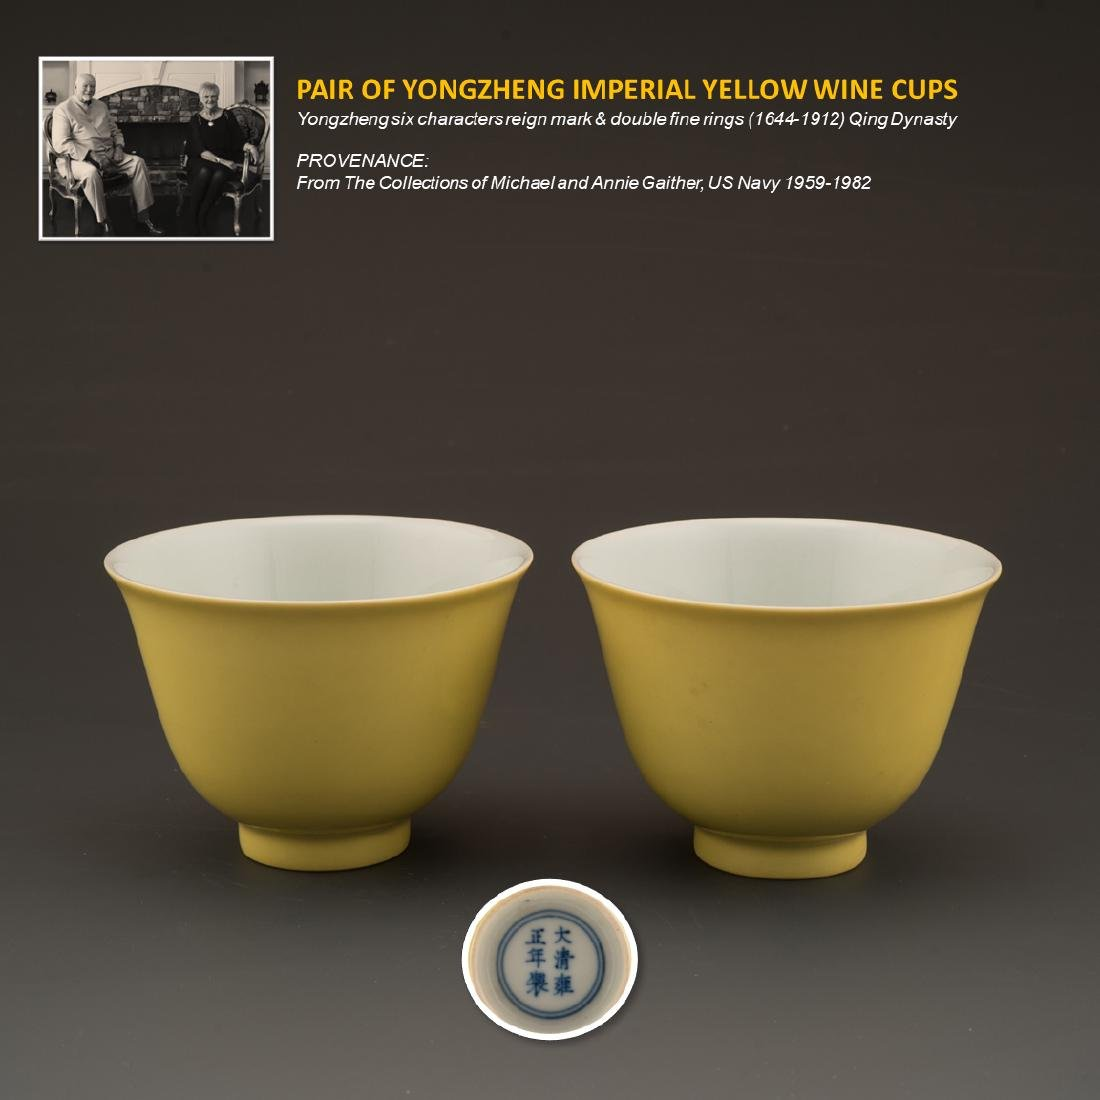 PAIR OF YONGZHENG IMPERIAL YELLOW WINE CUPS